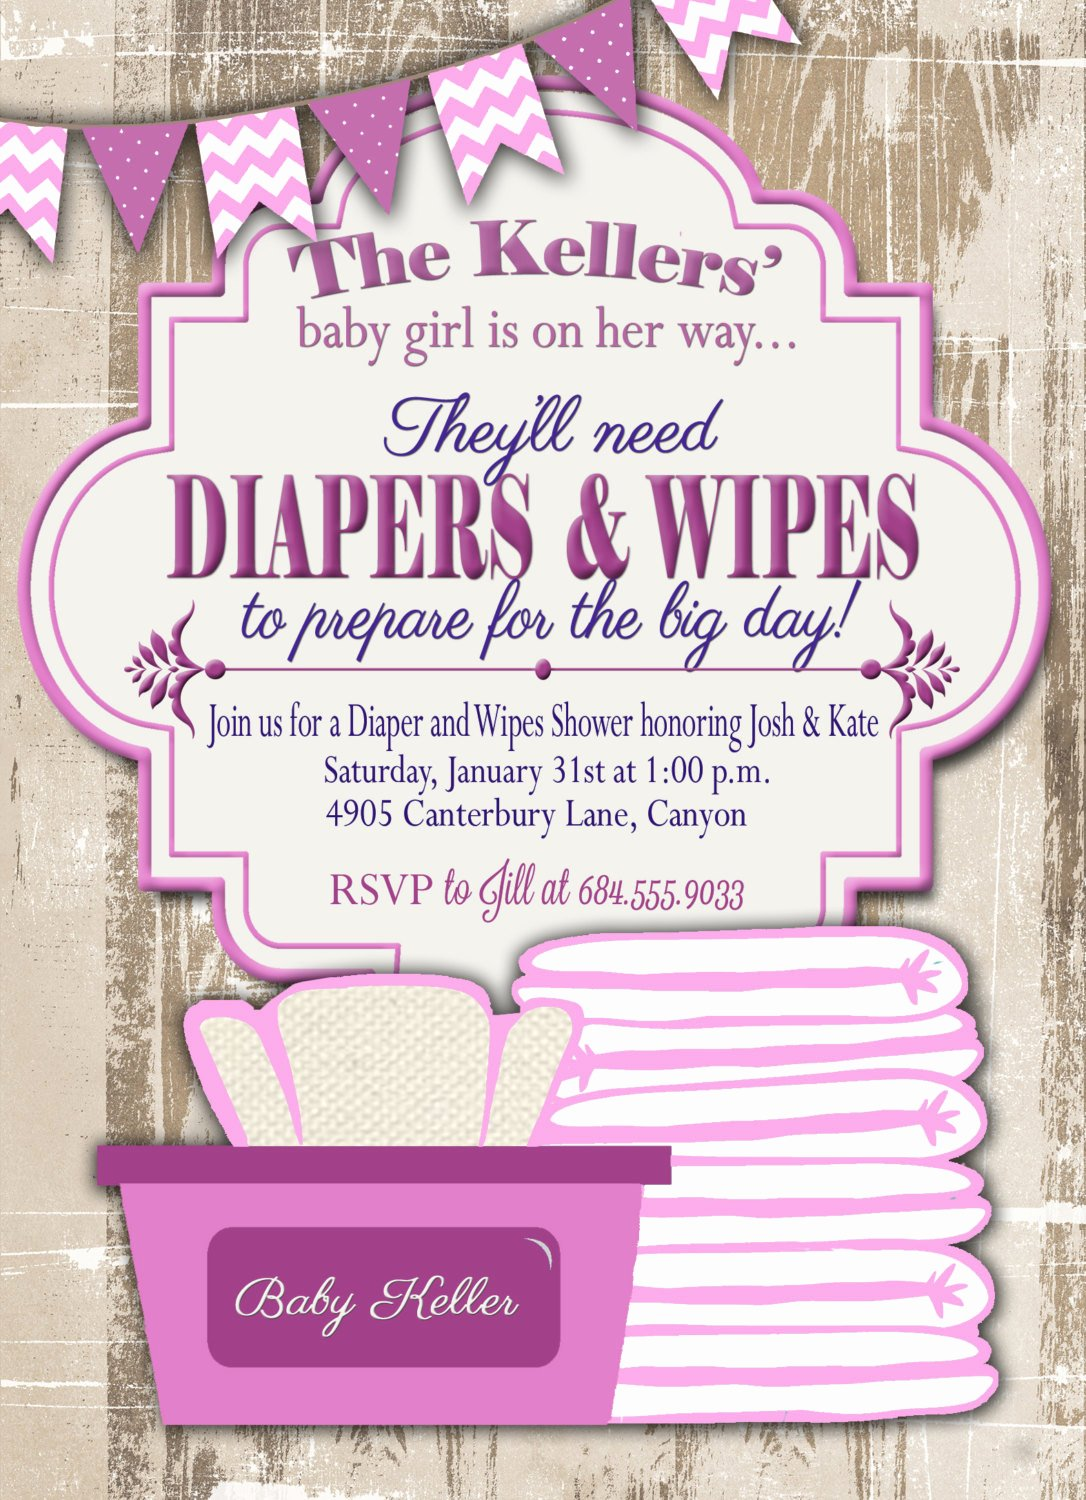 Baby Shower Diaper Invitation Template Fresh Baby Shower Invitation Diaper and Wipes Baby Shower